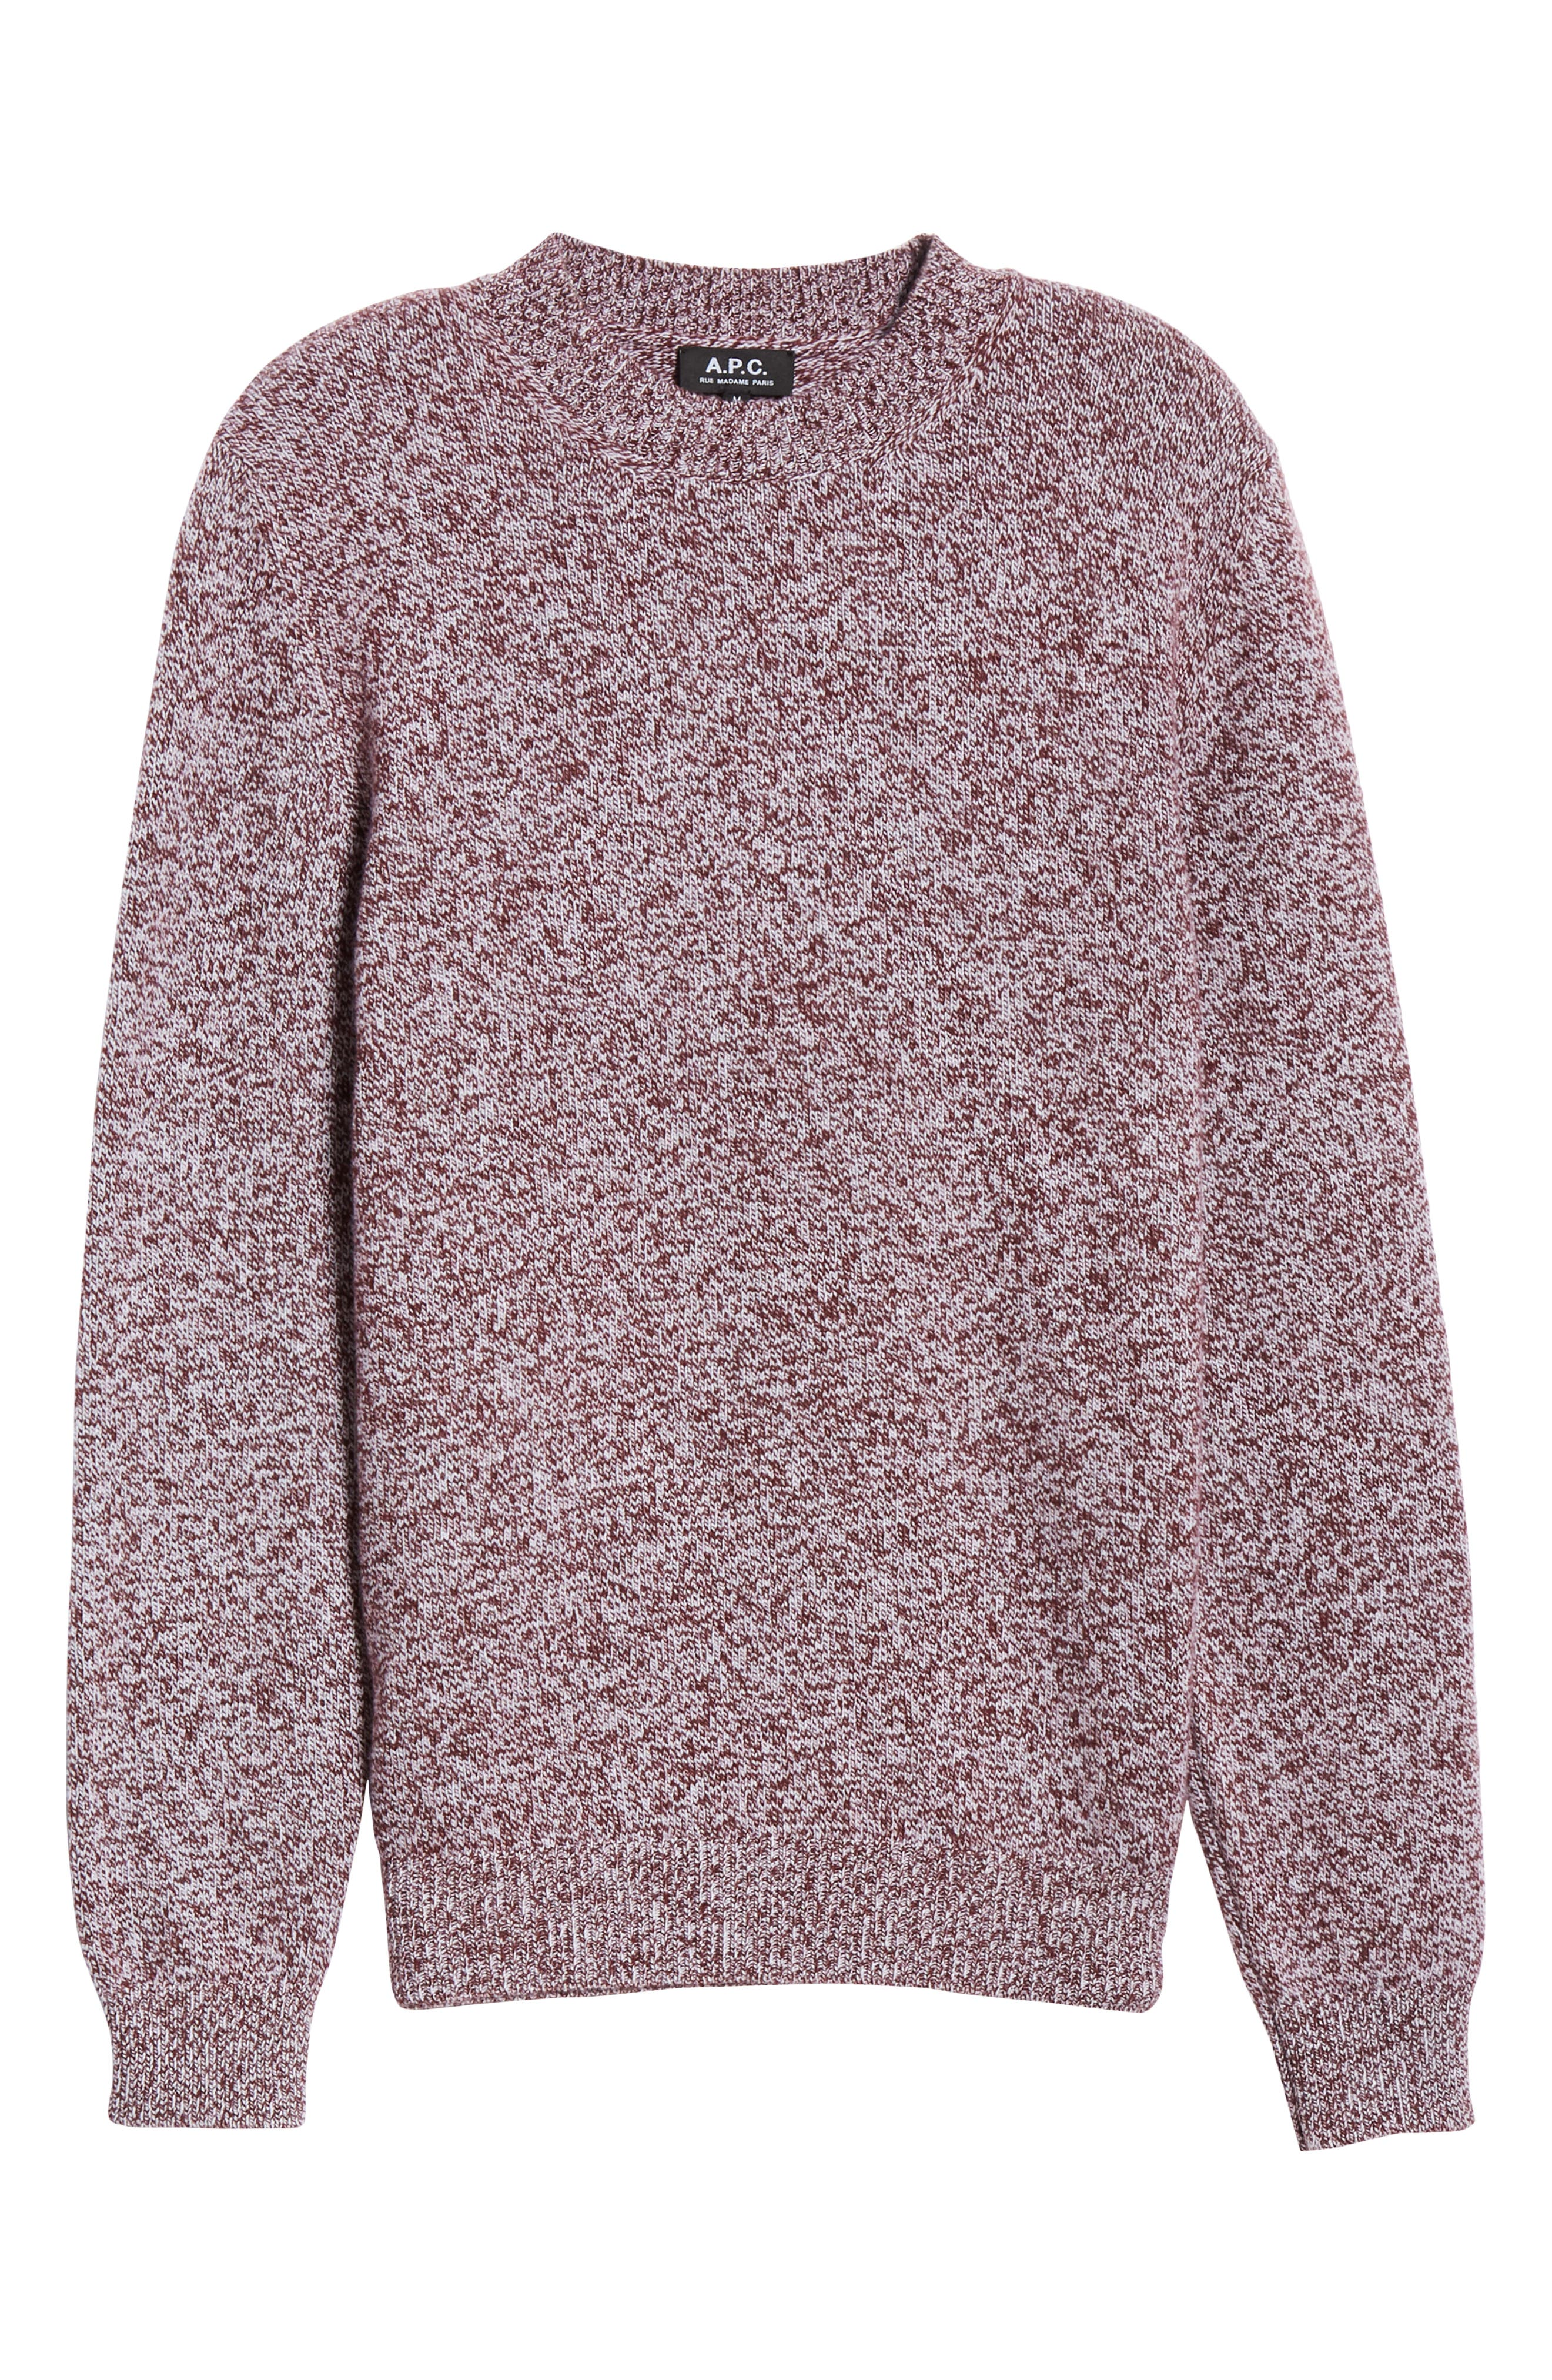 Marble Wool Sweater,                             Alternate thumbnail 6, color,                             602